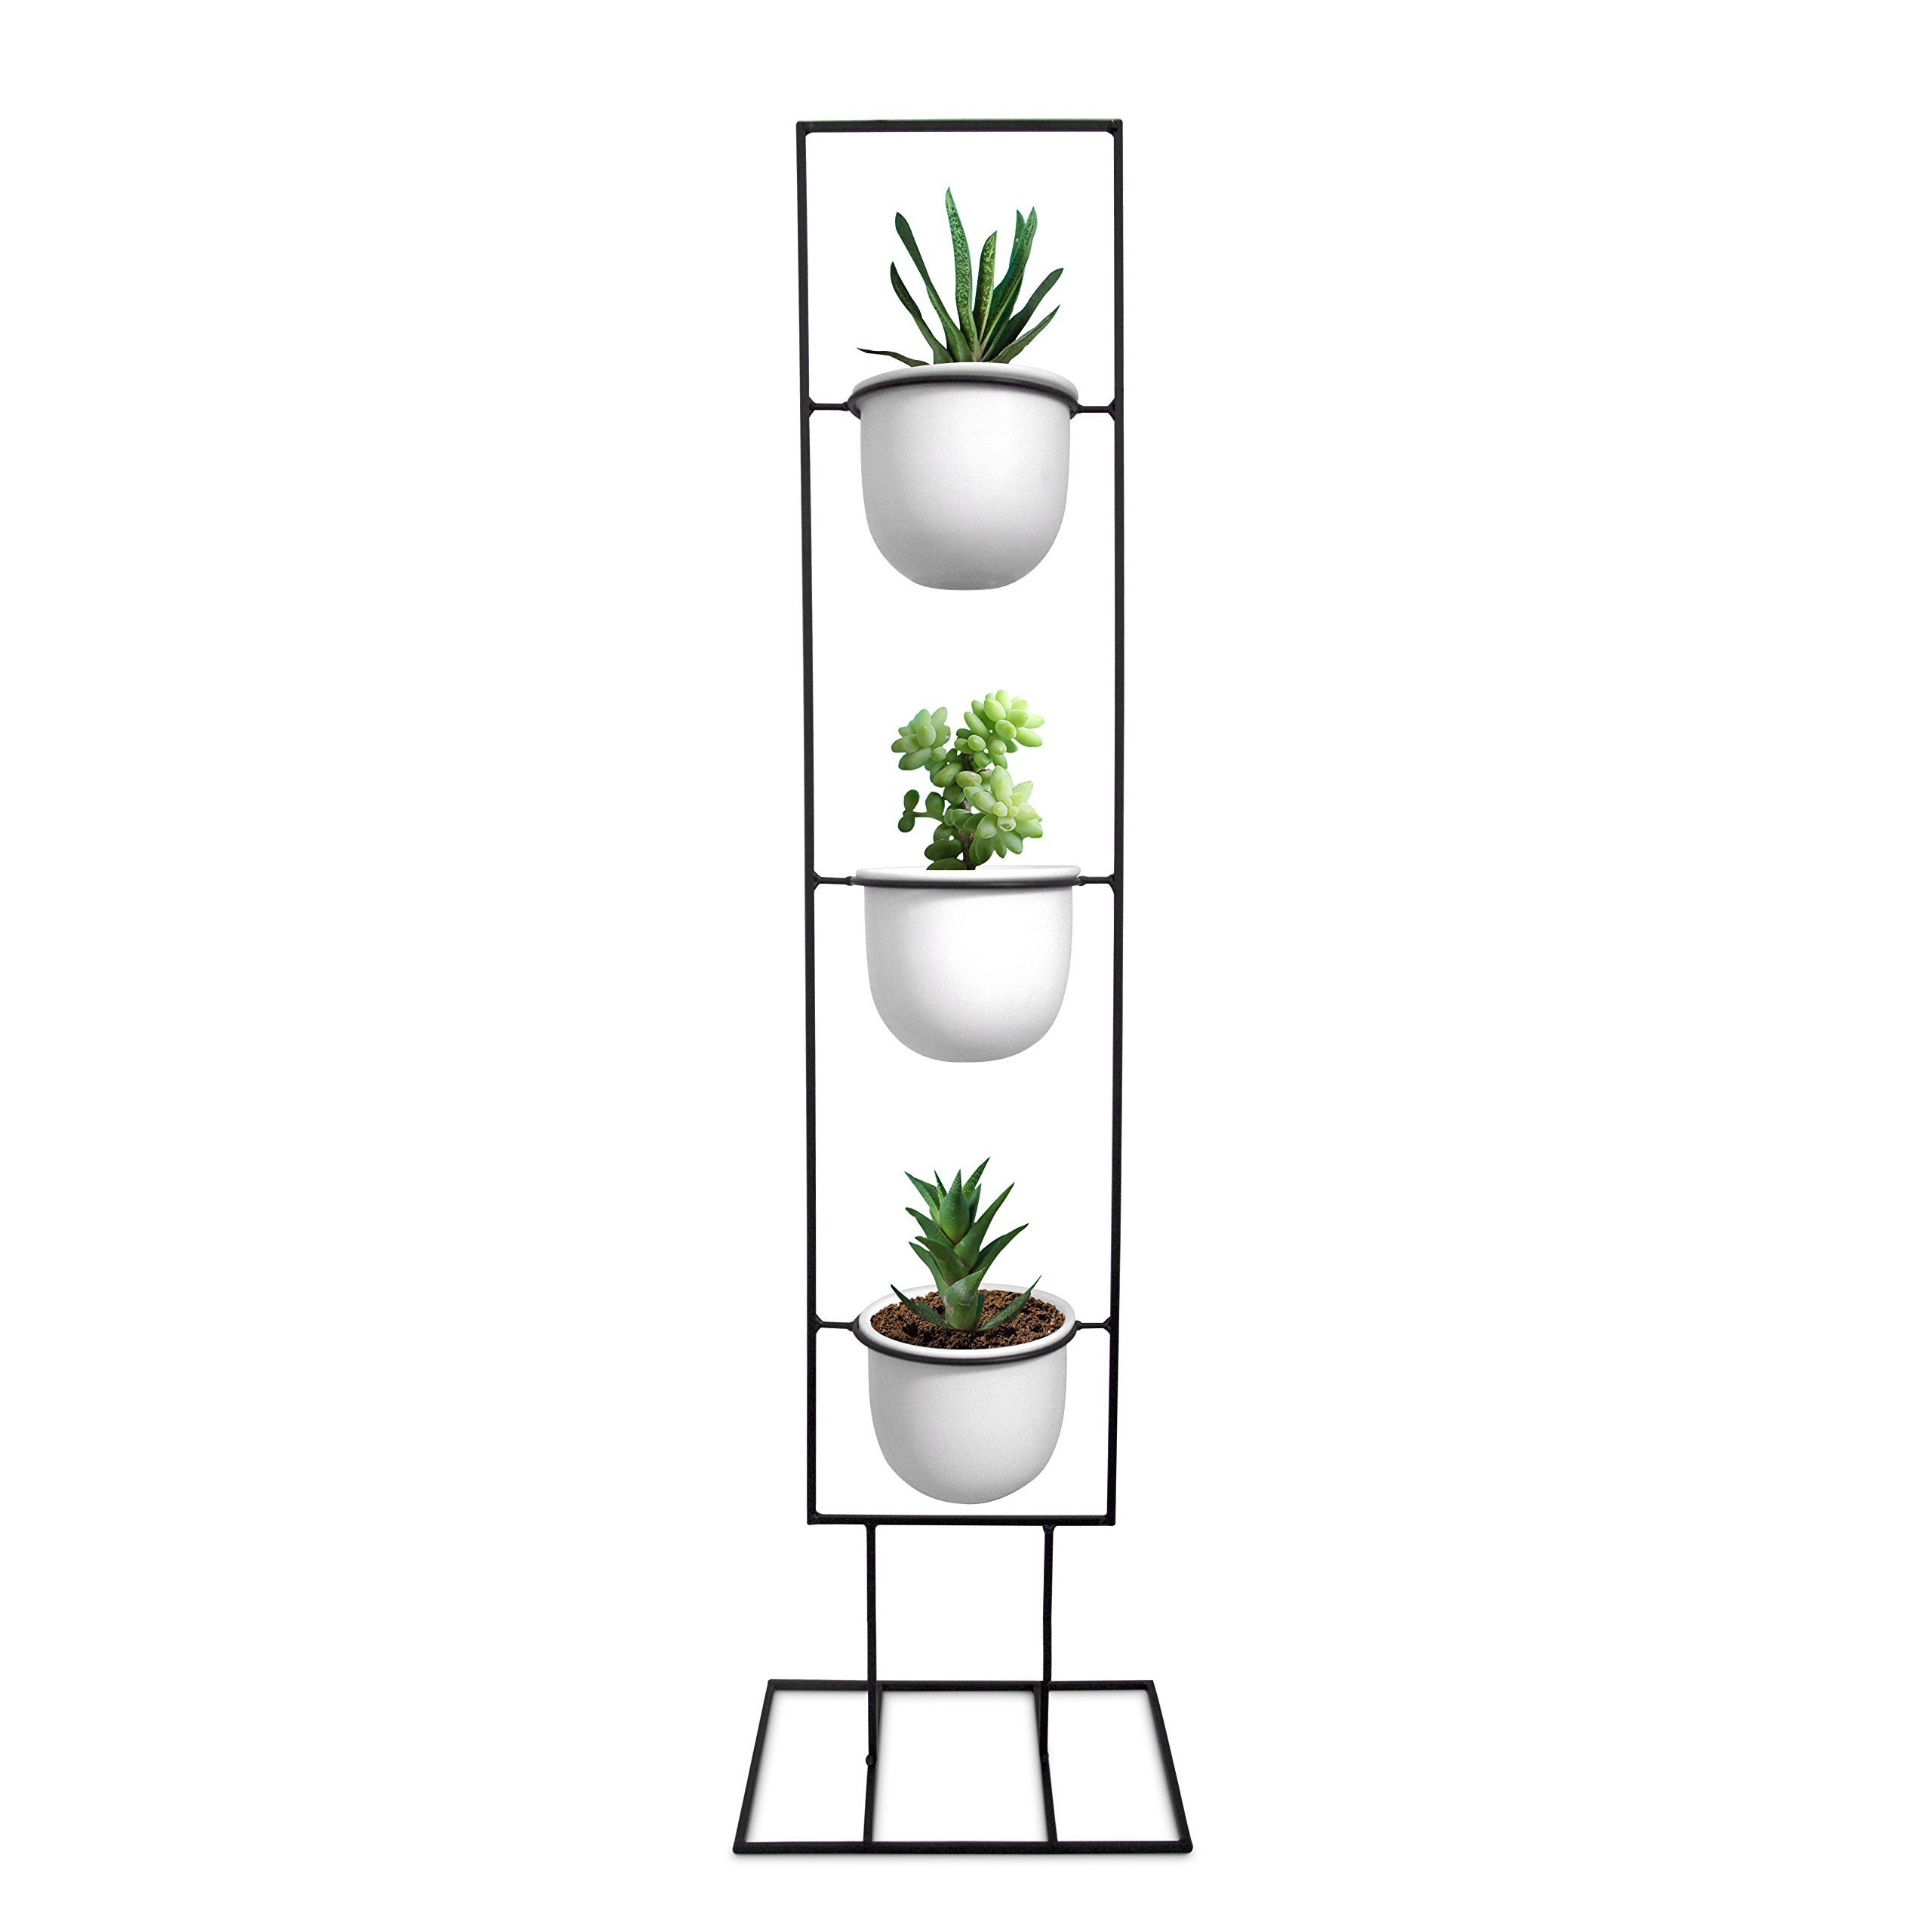 Indoor Metal Vertical Plant Stand with 3 White Ceramic Pots, Iron Flower Pot Holder Rack, Outdoor Decor, Potted Steel Planter Garden Container Display, 23 Bees